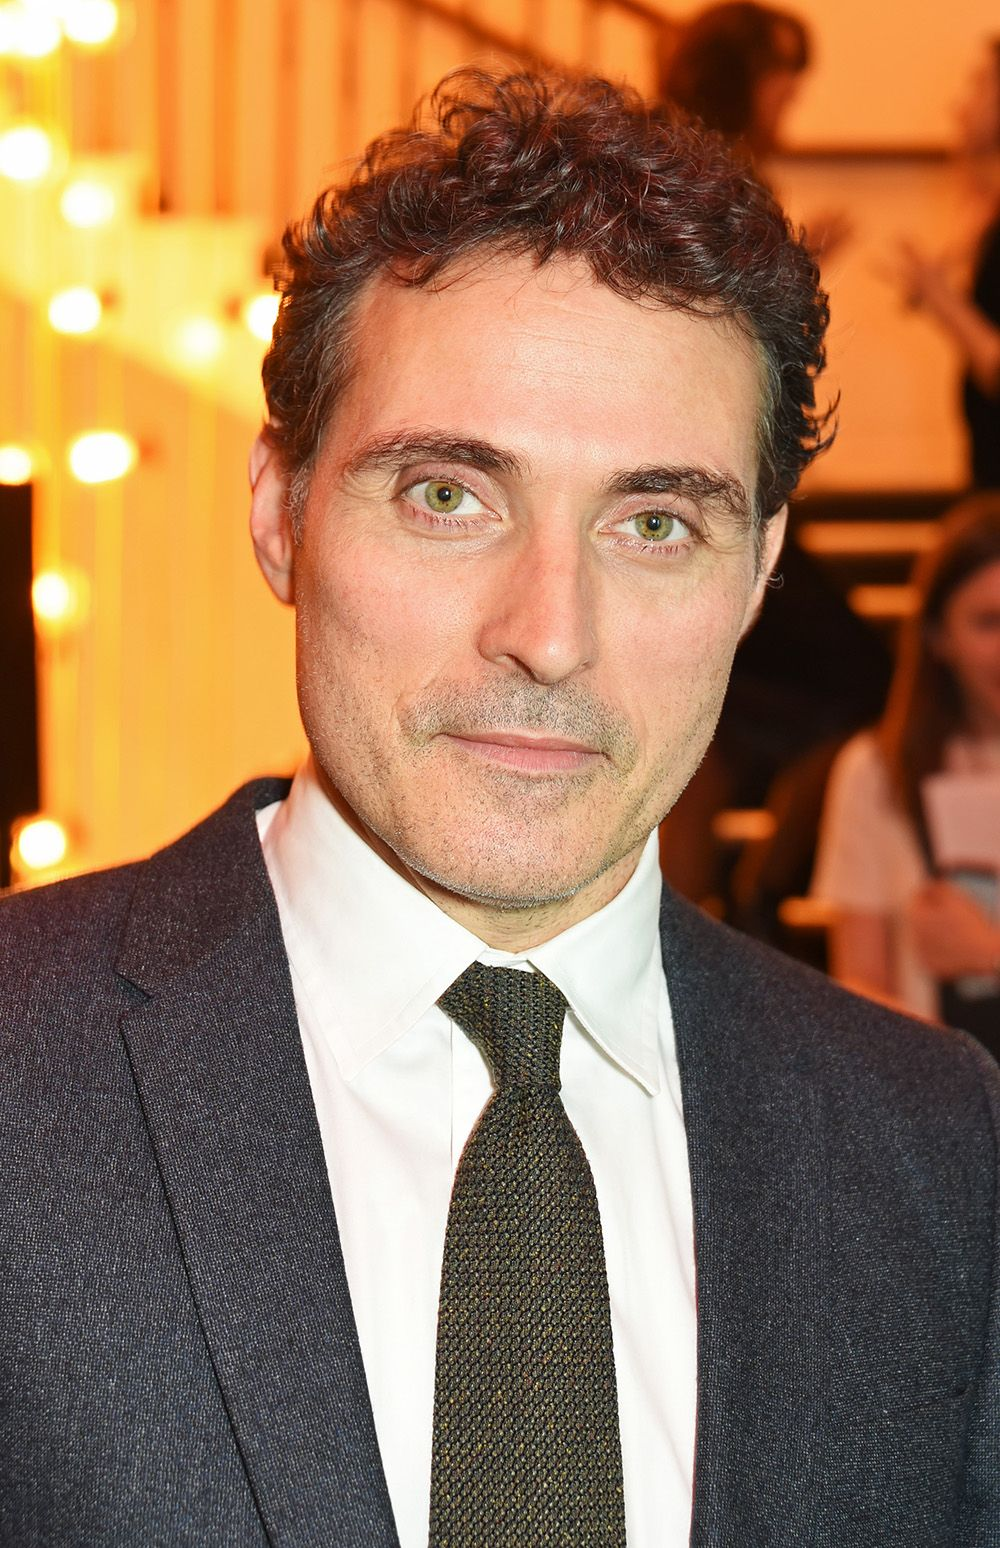 Discussion on this topic: Melissa Auf der Maur, rufus-sewell-born-1967/